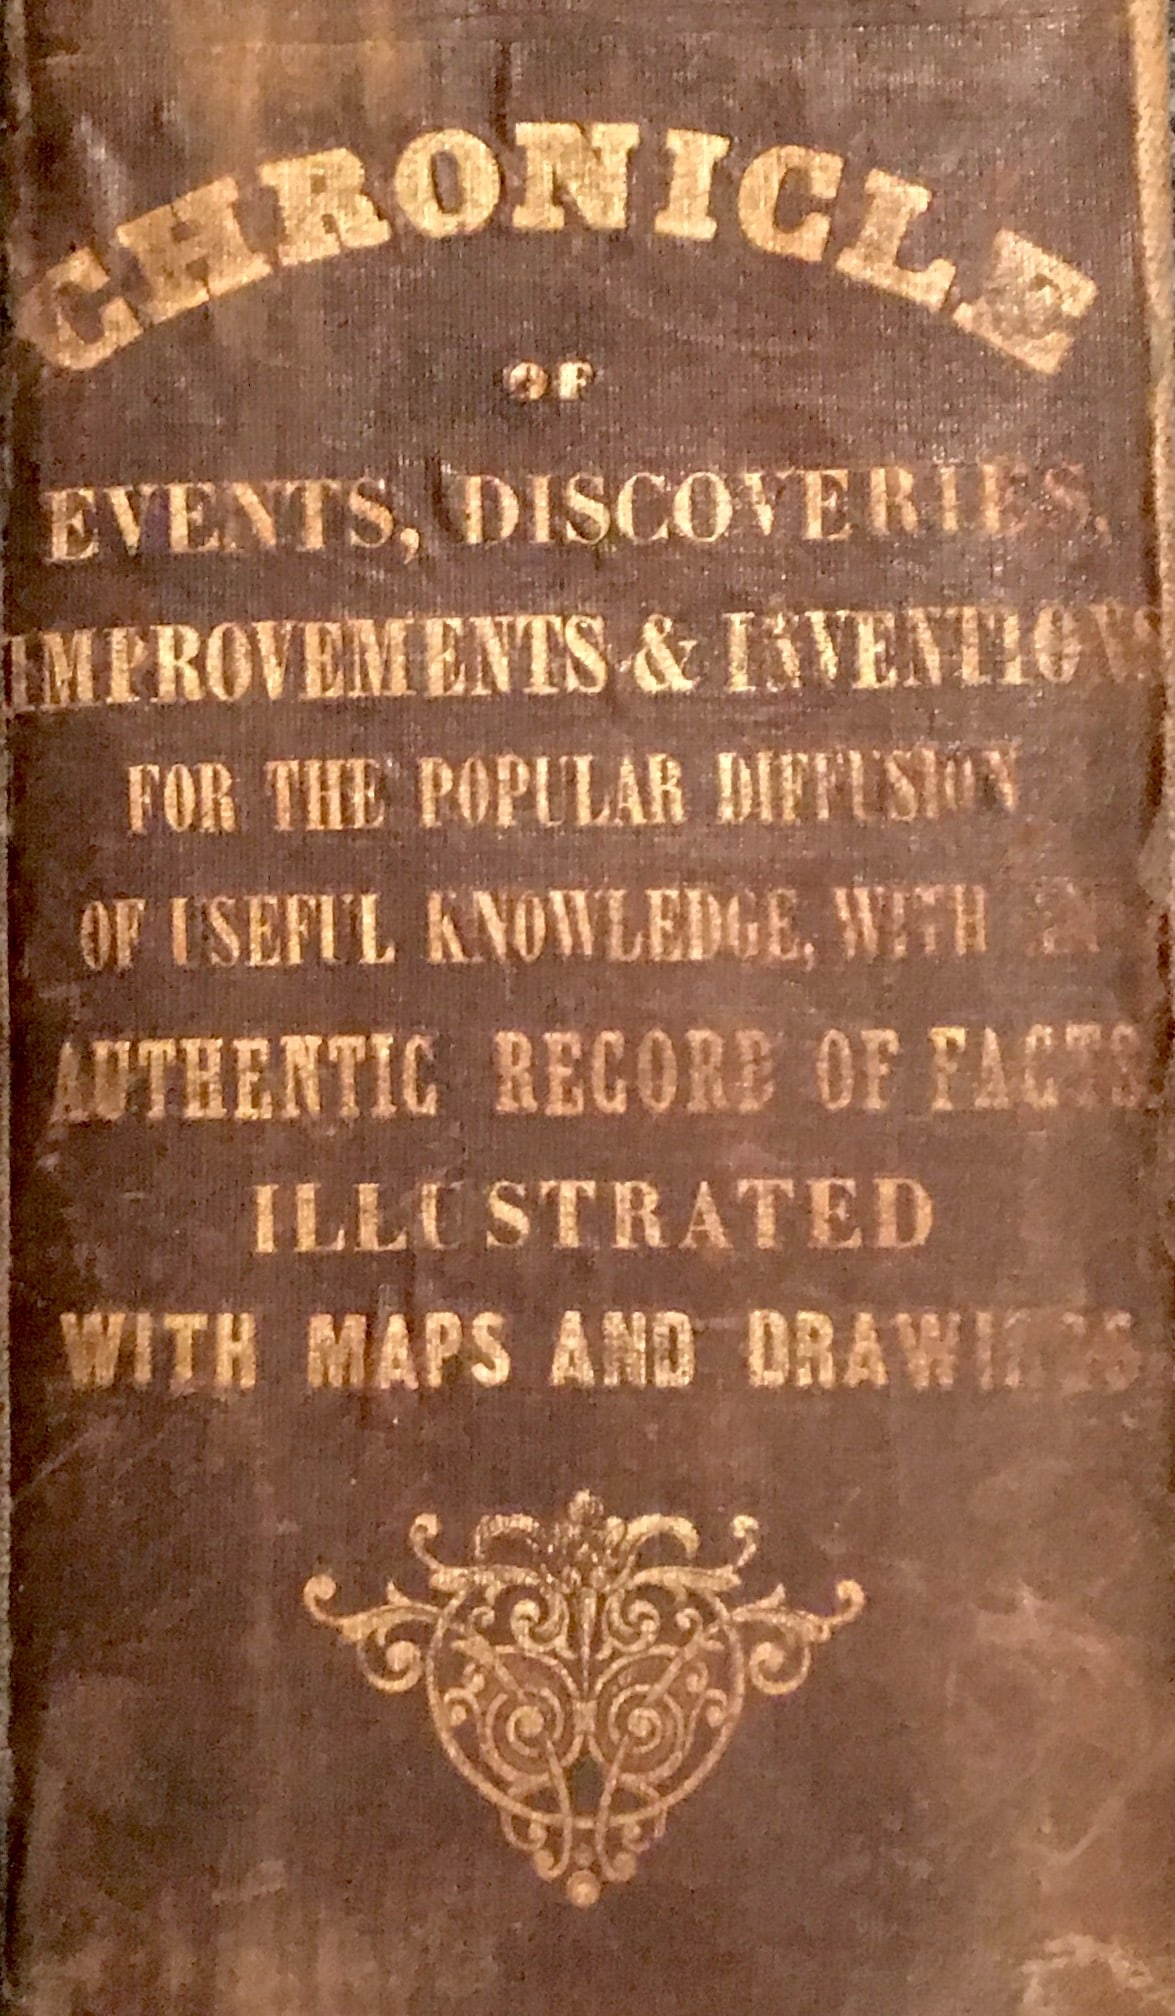 Monthly Chronicle of Events, Discoveries, and Improvements, For the Popular Diffusion of Useful Knowledge, with an Authentic Records of Facts